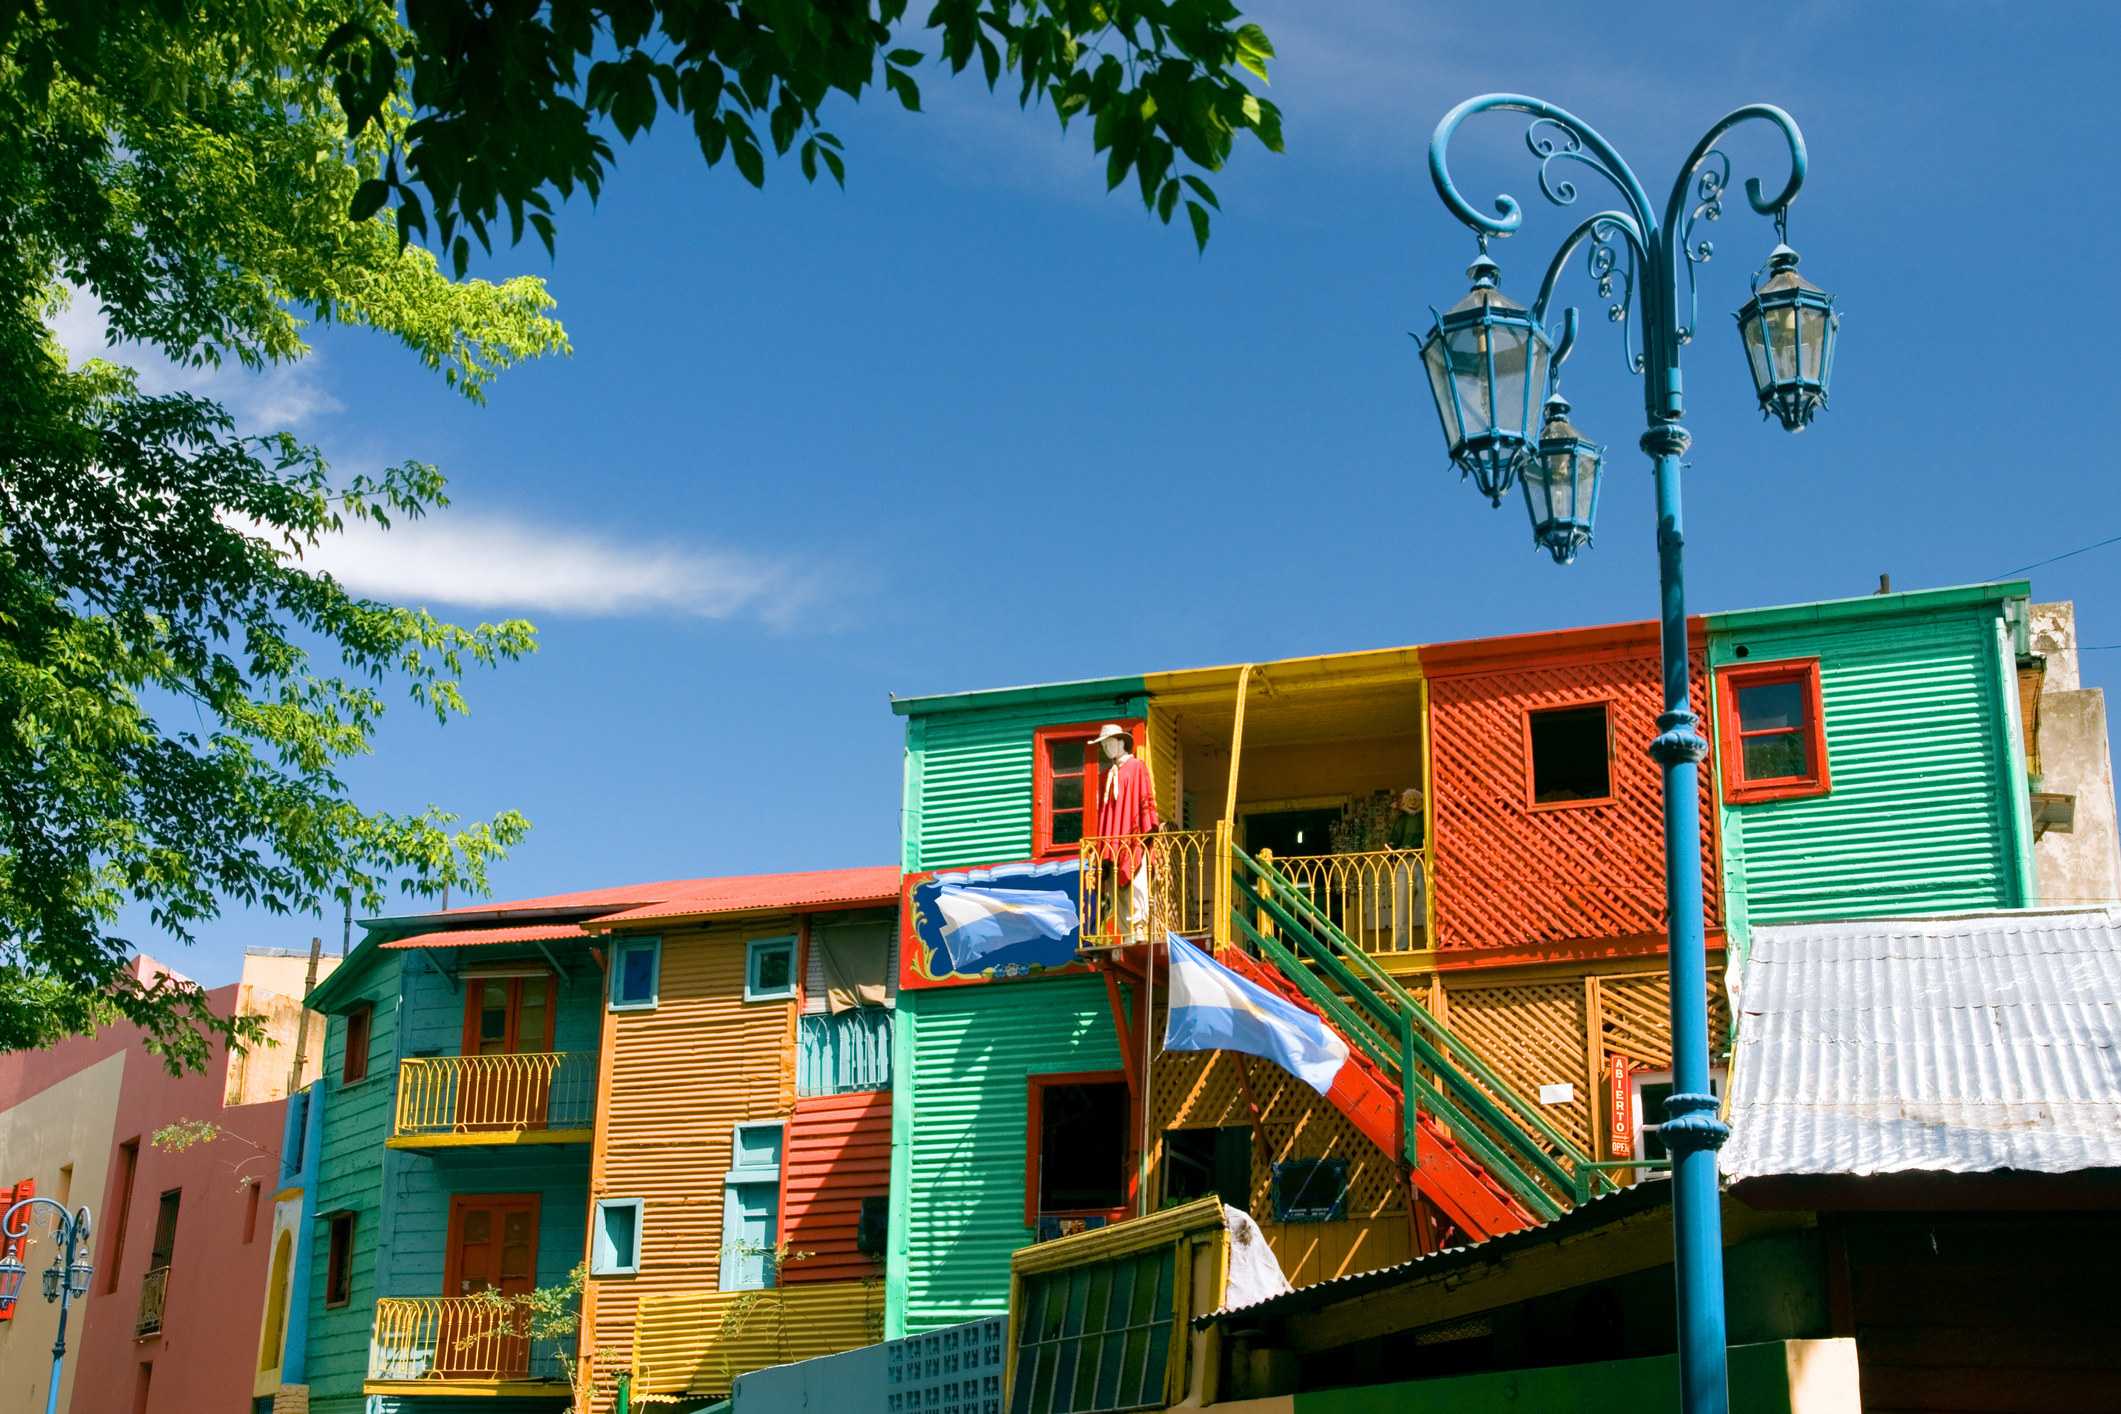 Colorful buildings of Caminito in Buenos Aires